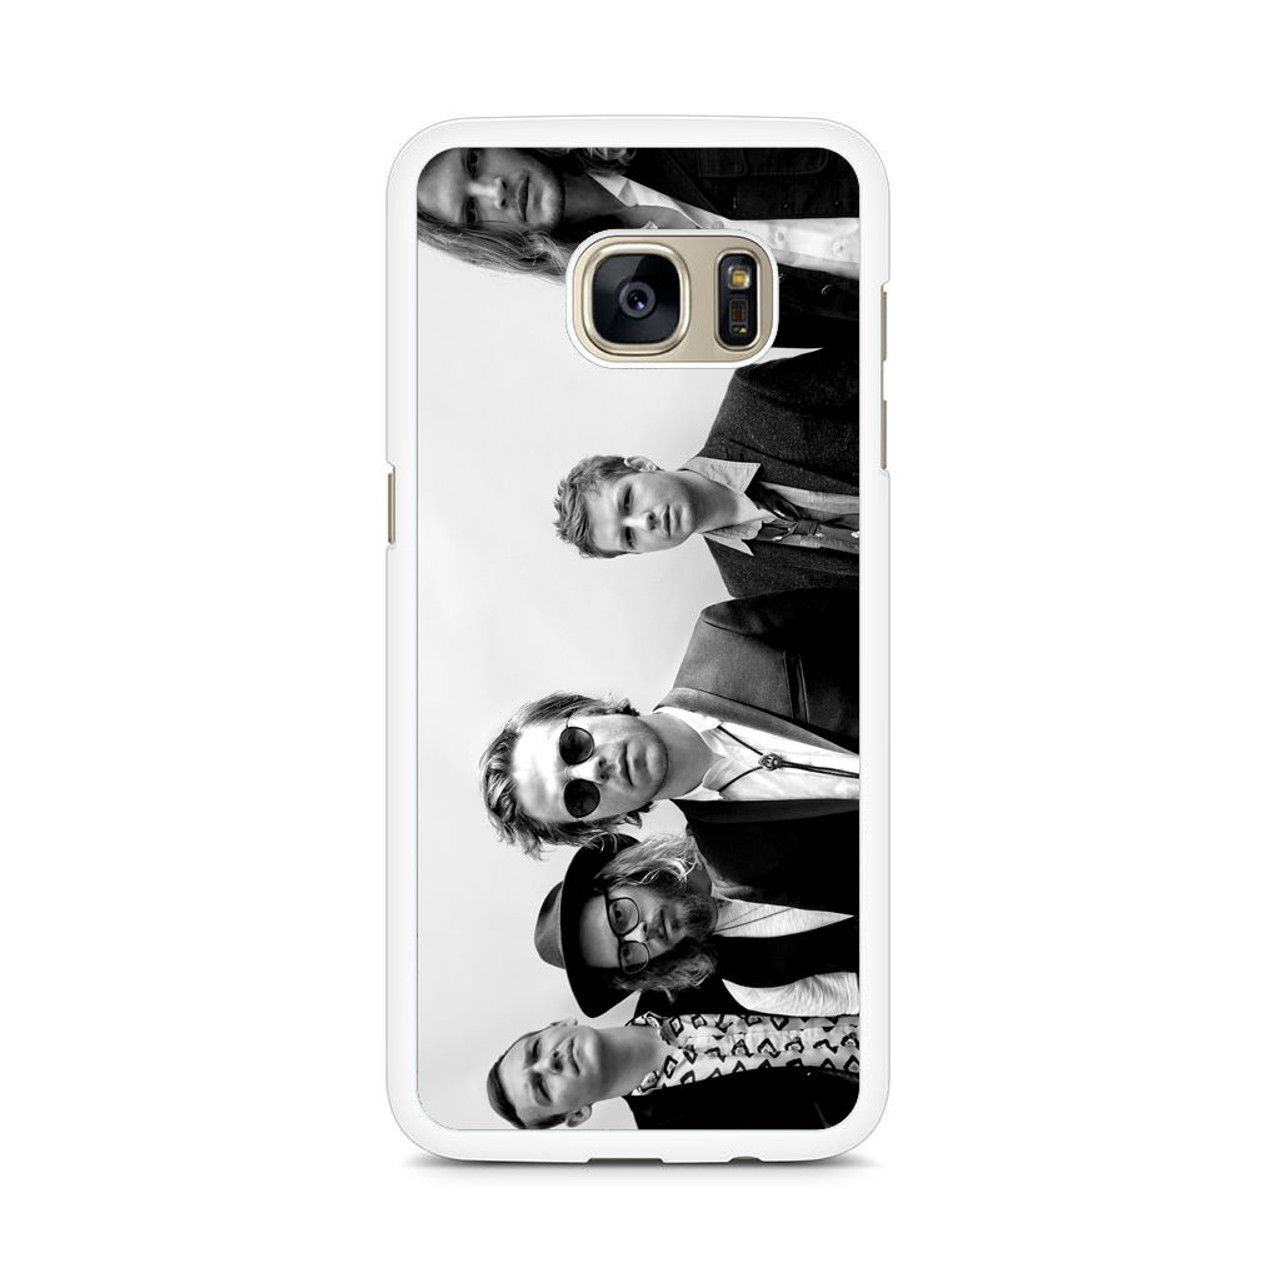 Cage The Elephant Wallpaper Samsung Galaxy S7 Edge Case Caseshunter